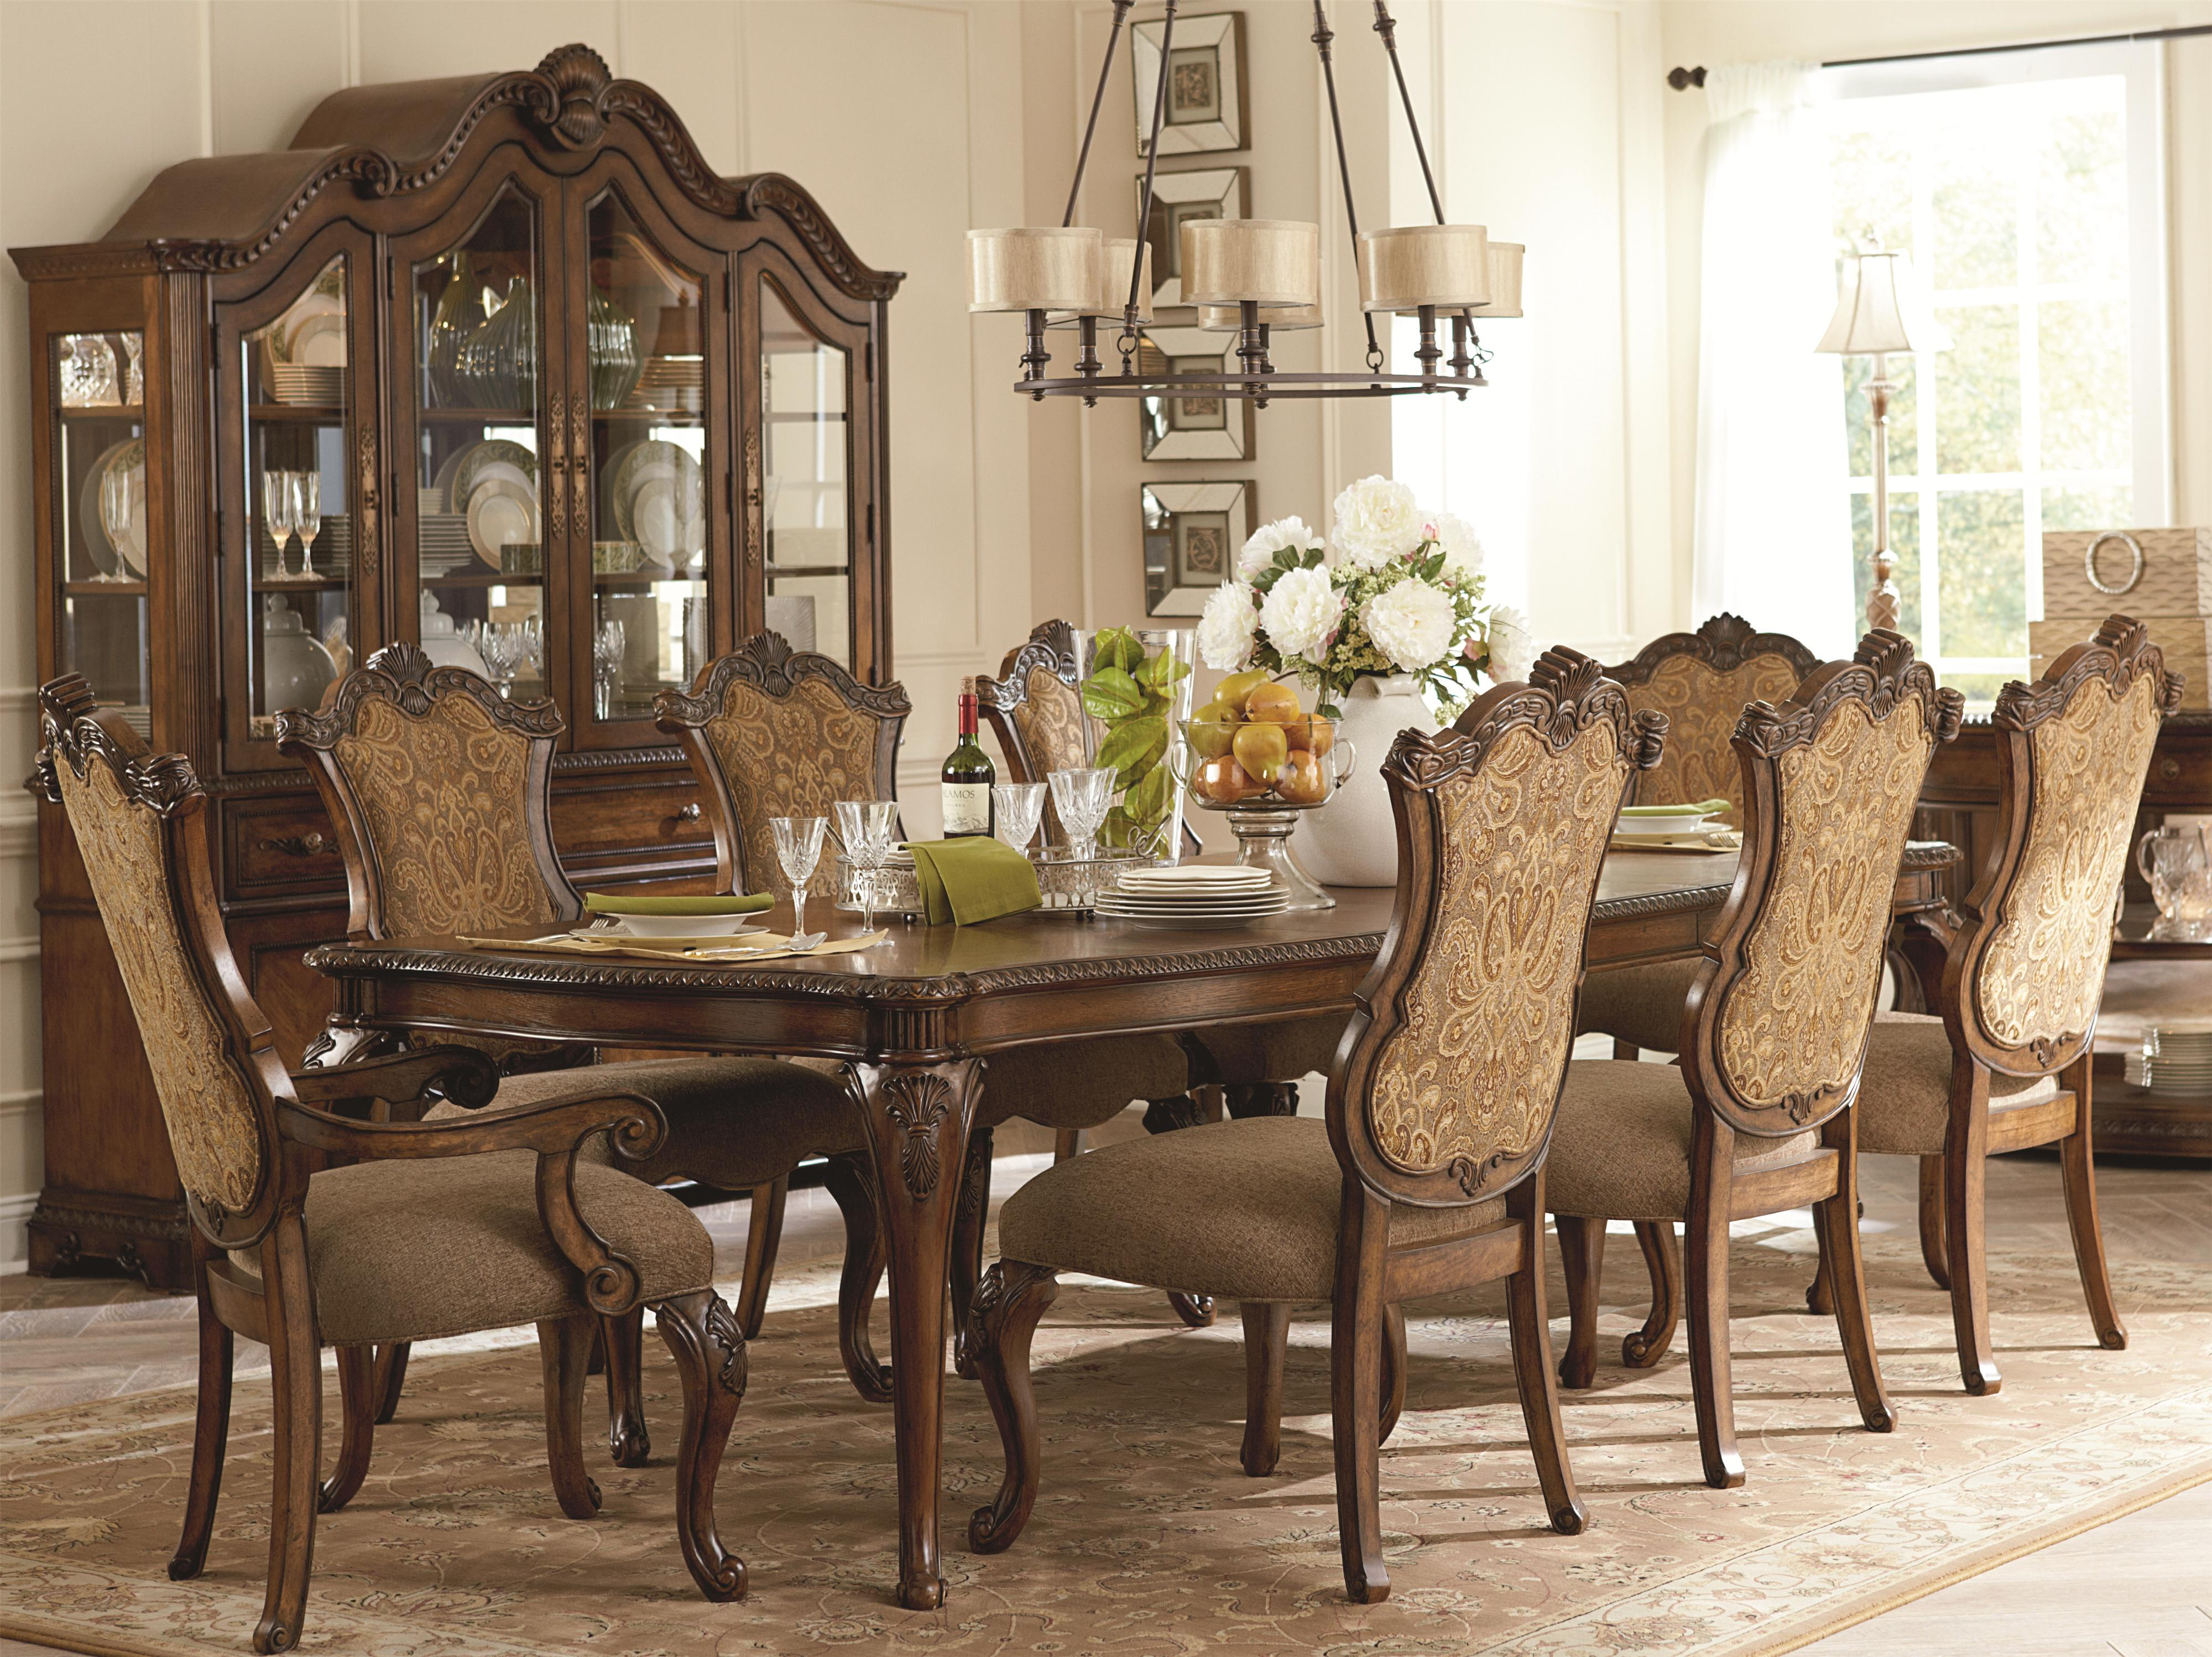 Legacy Classic Pemberleigh 9 Piece Table and Chairs Set - Item Number: 3100-222+6x340 KD+2x341 KD